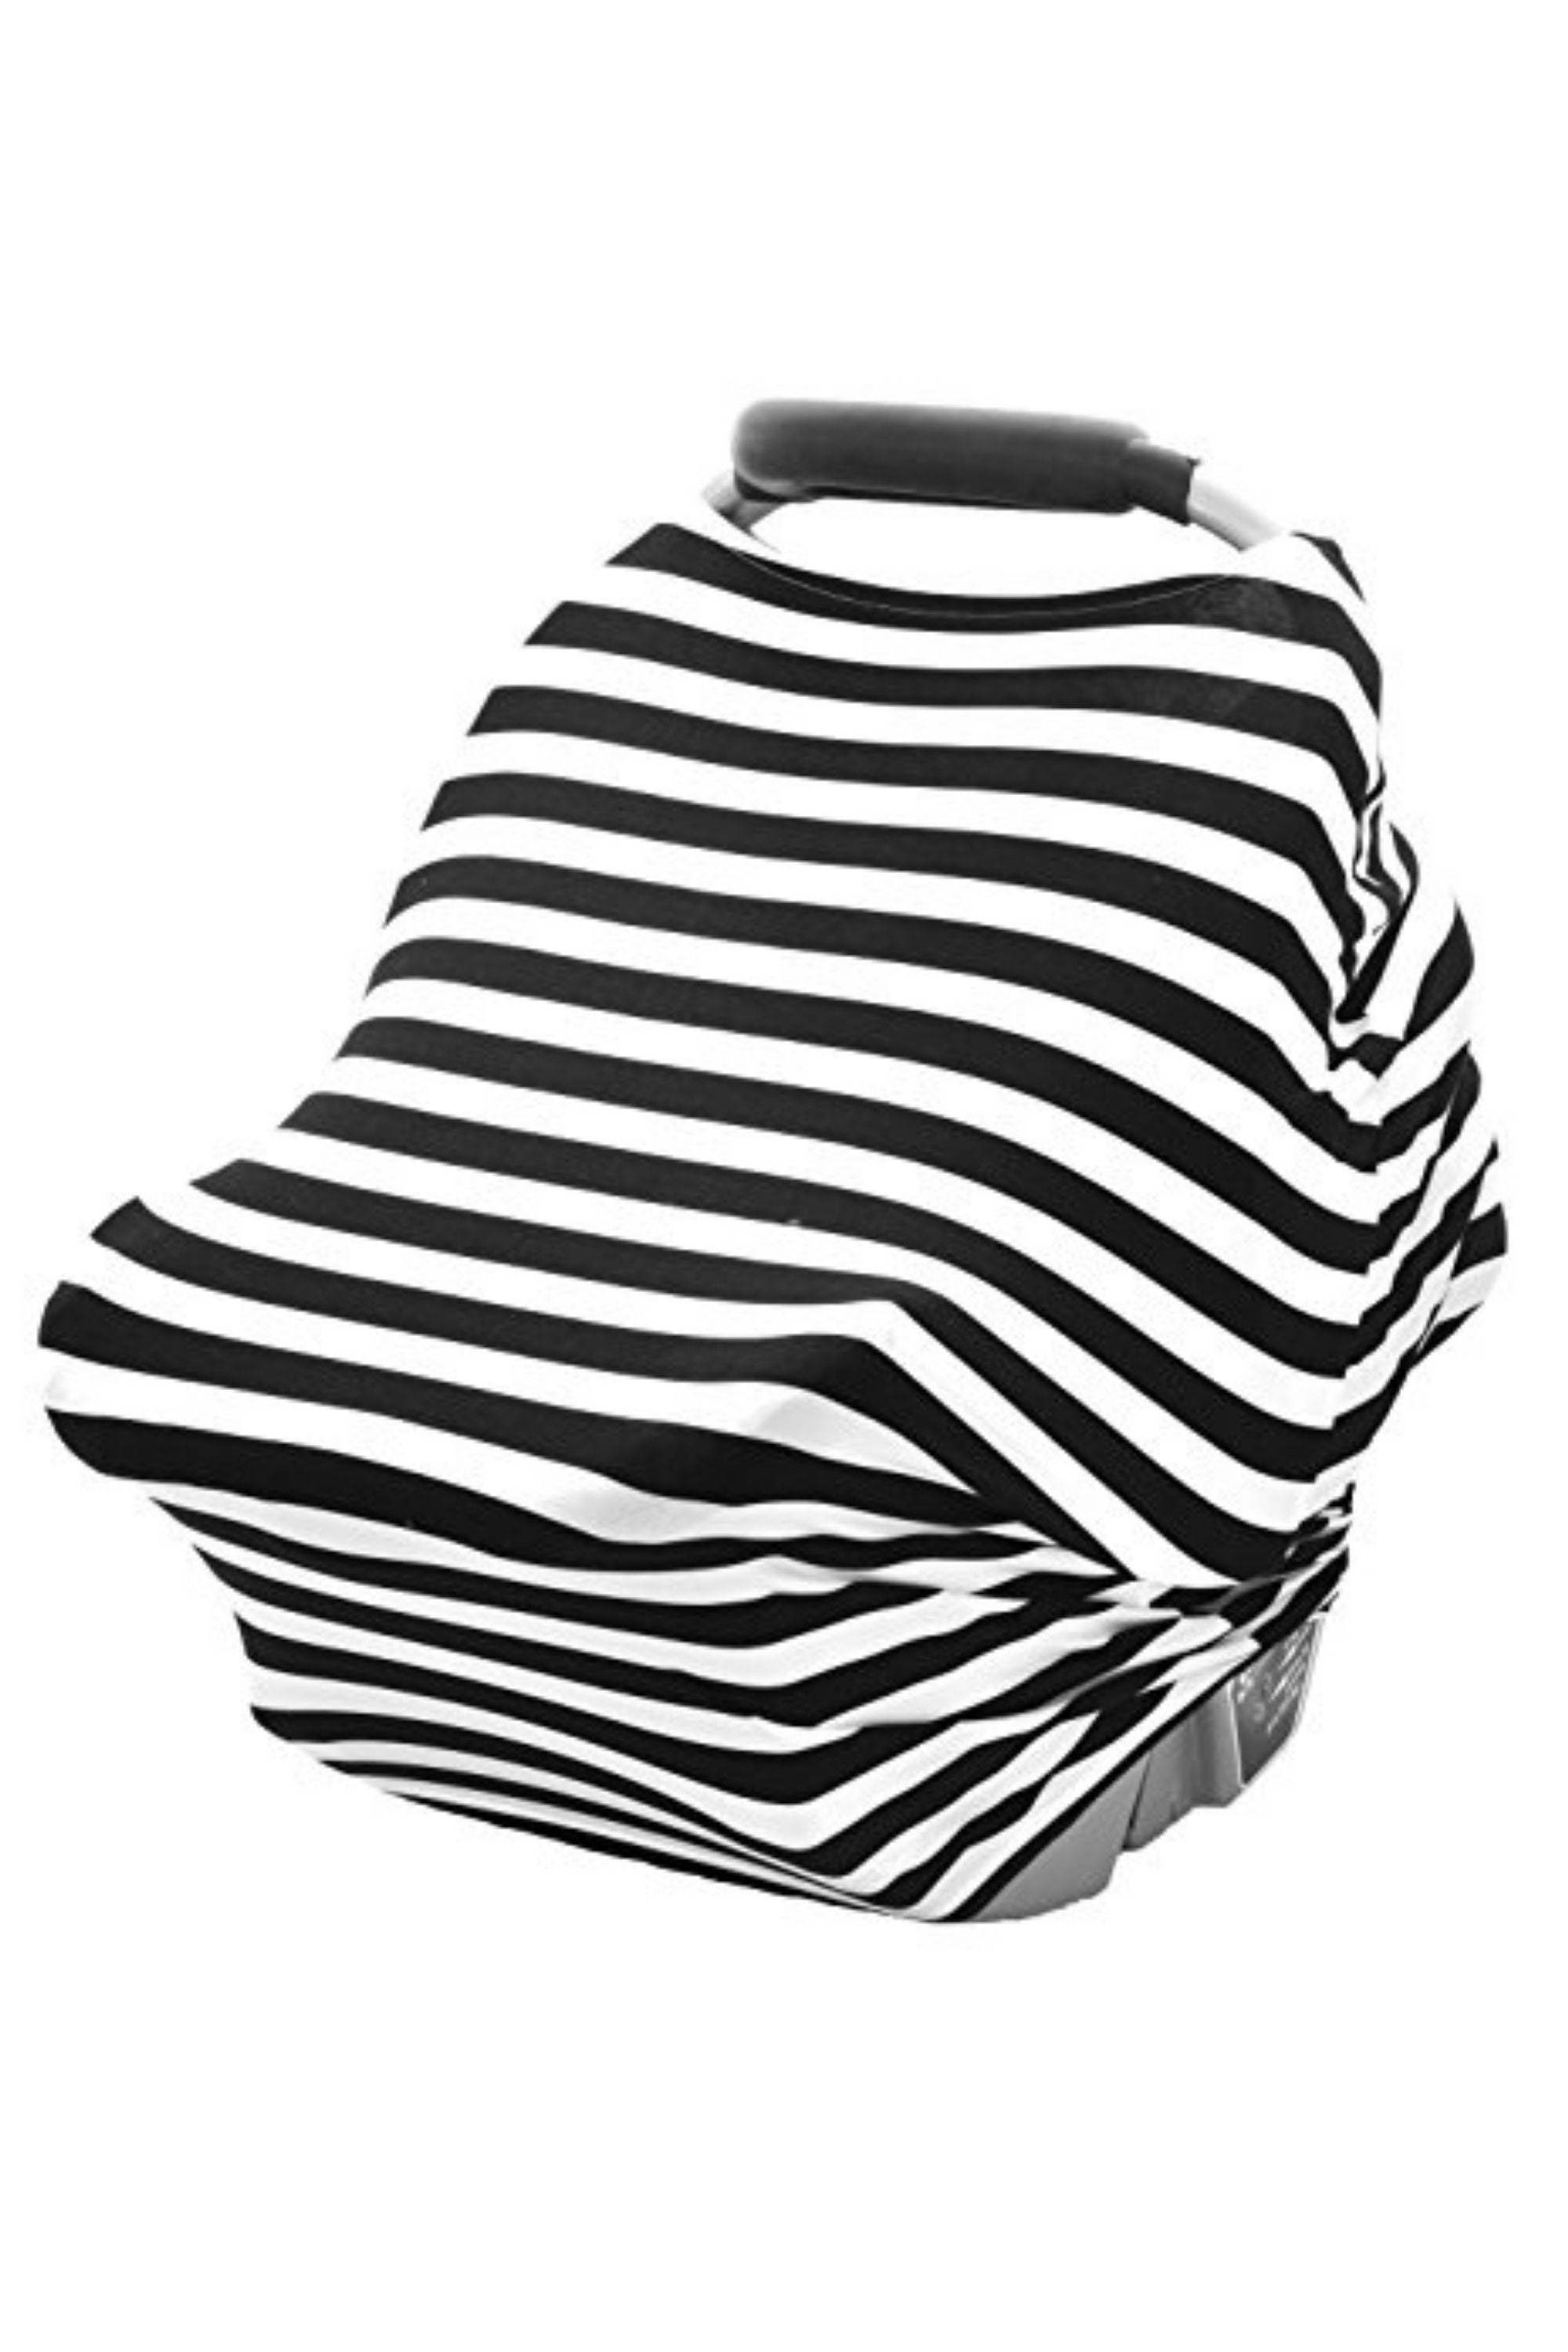 4-in-1 Nursing Babe Cover